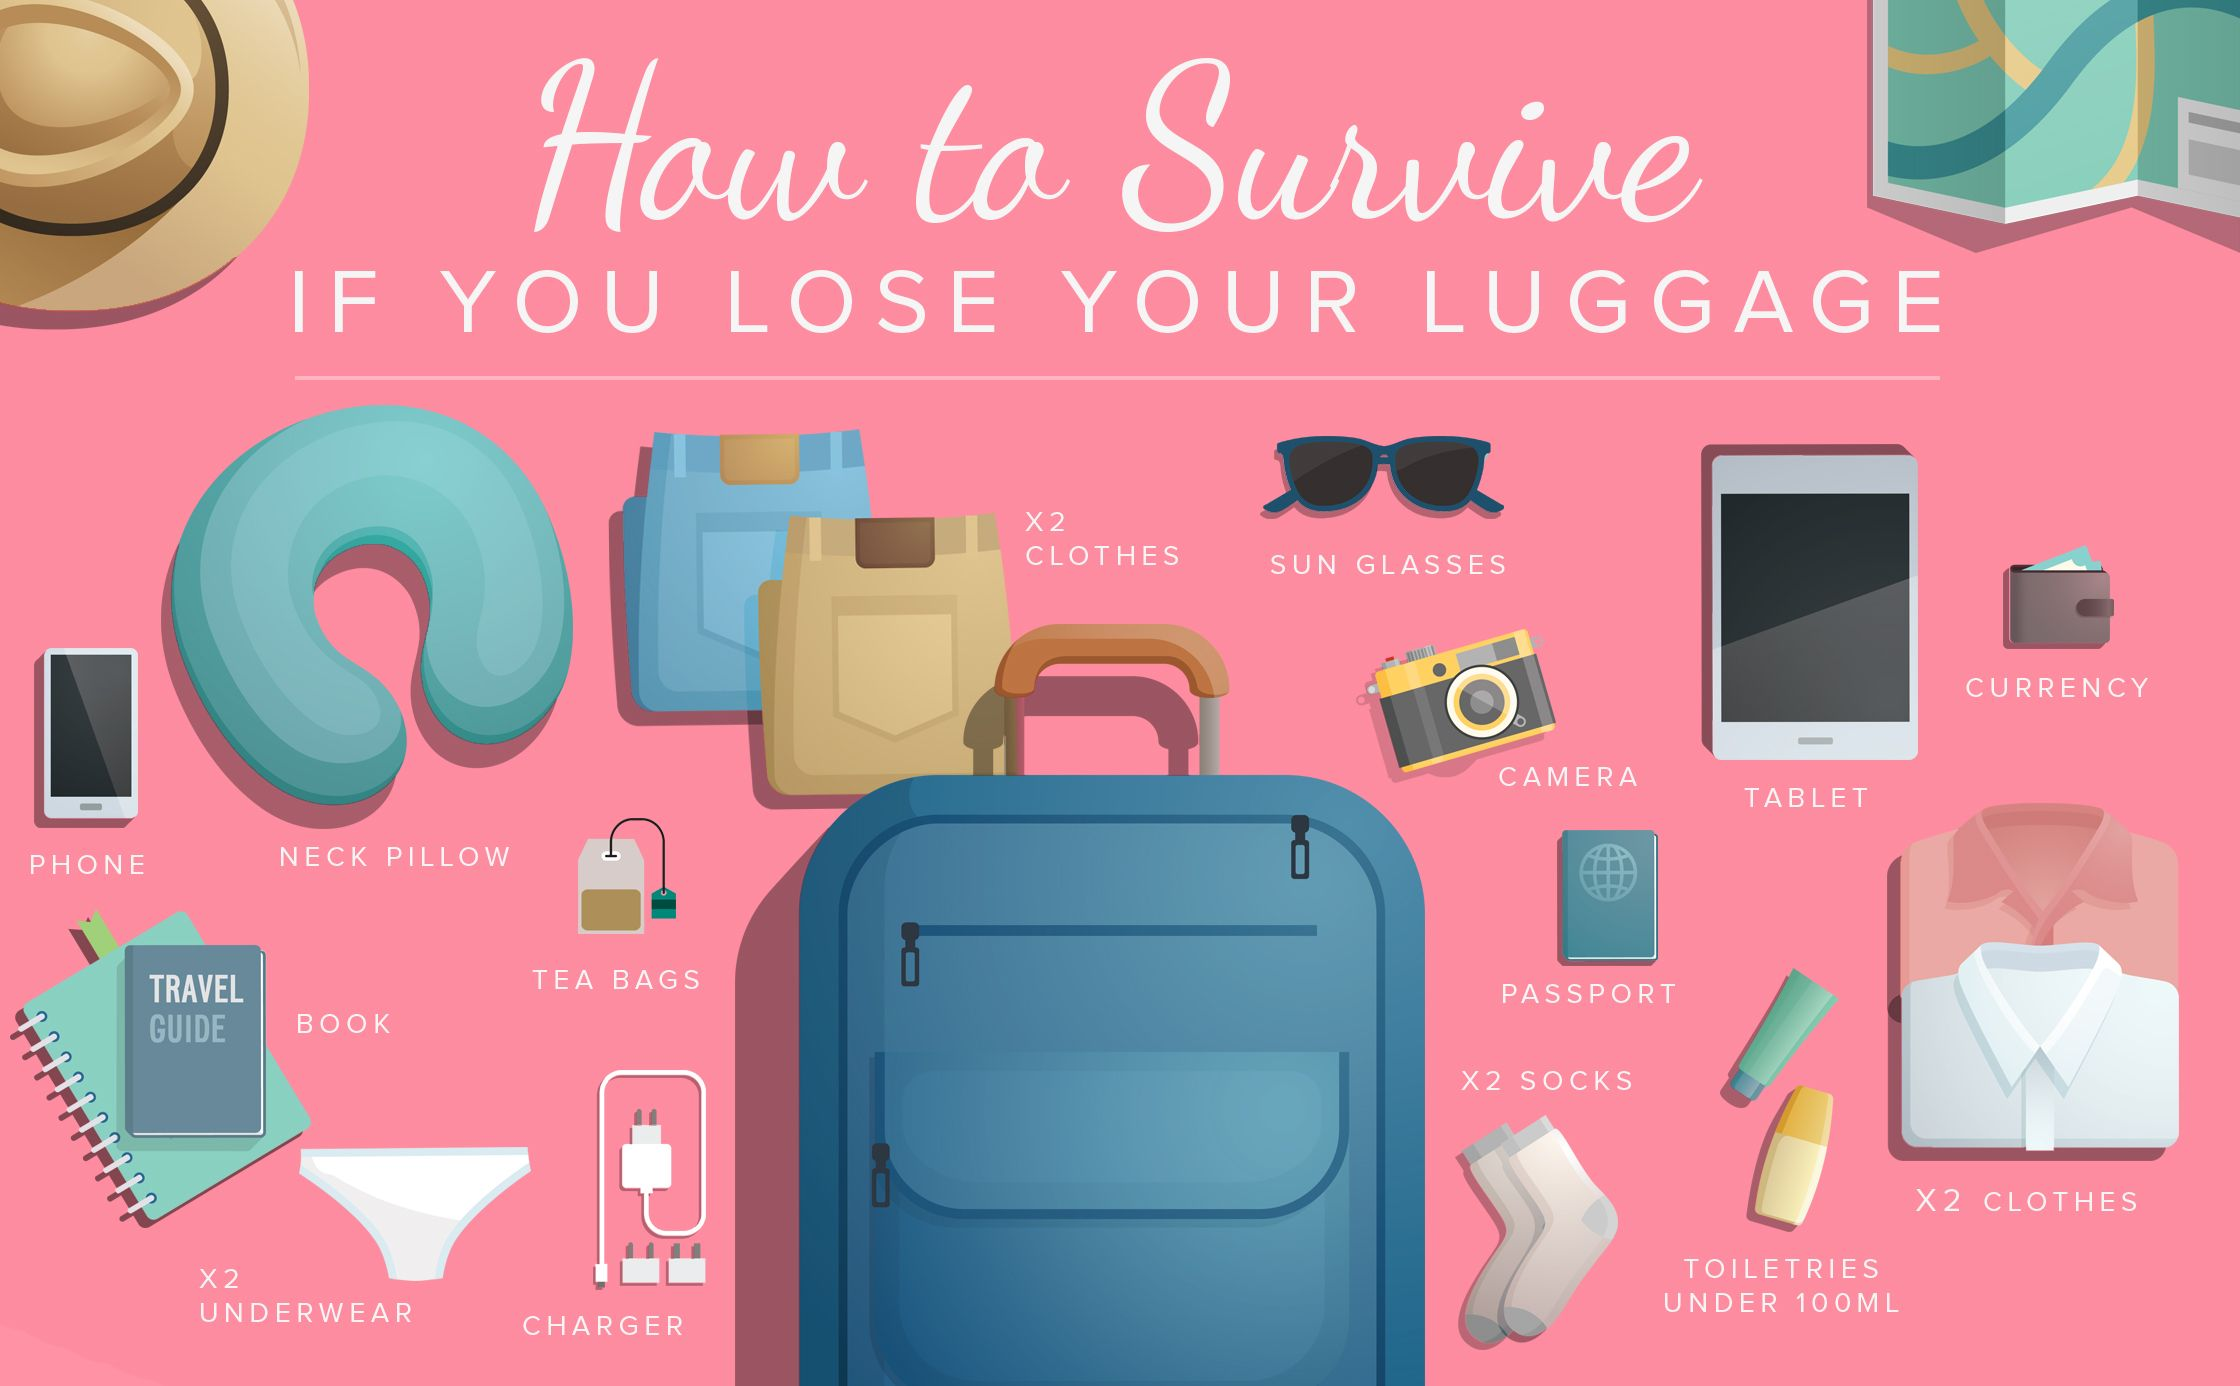 How to get your lost luggage back